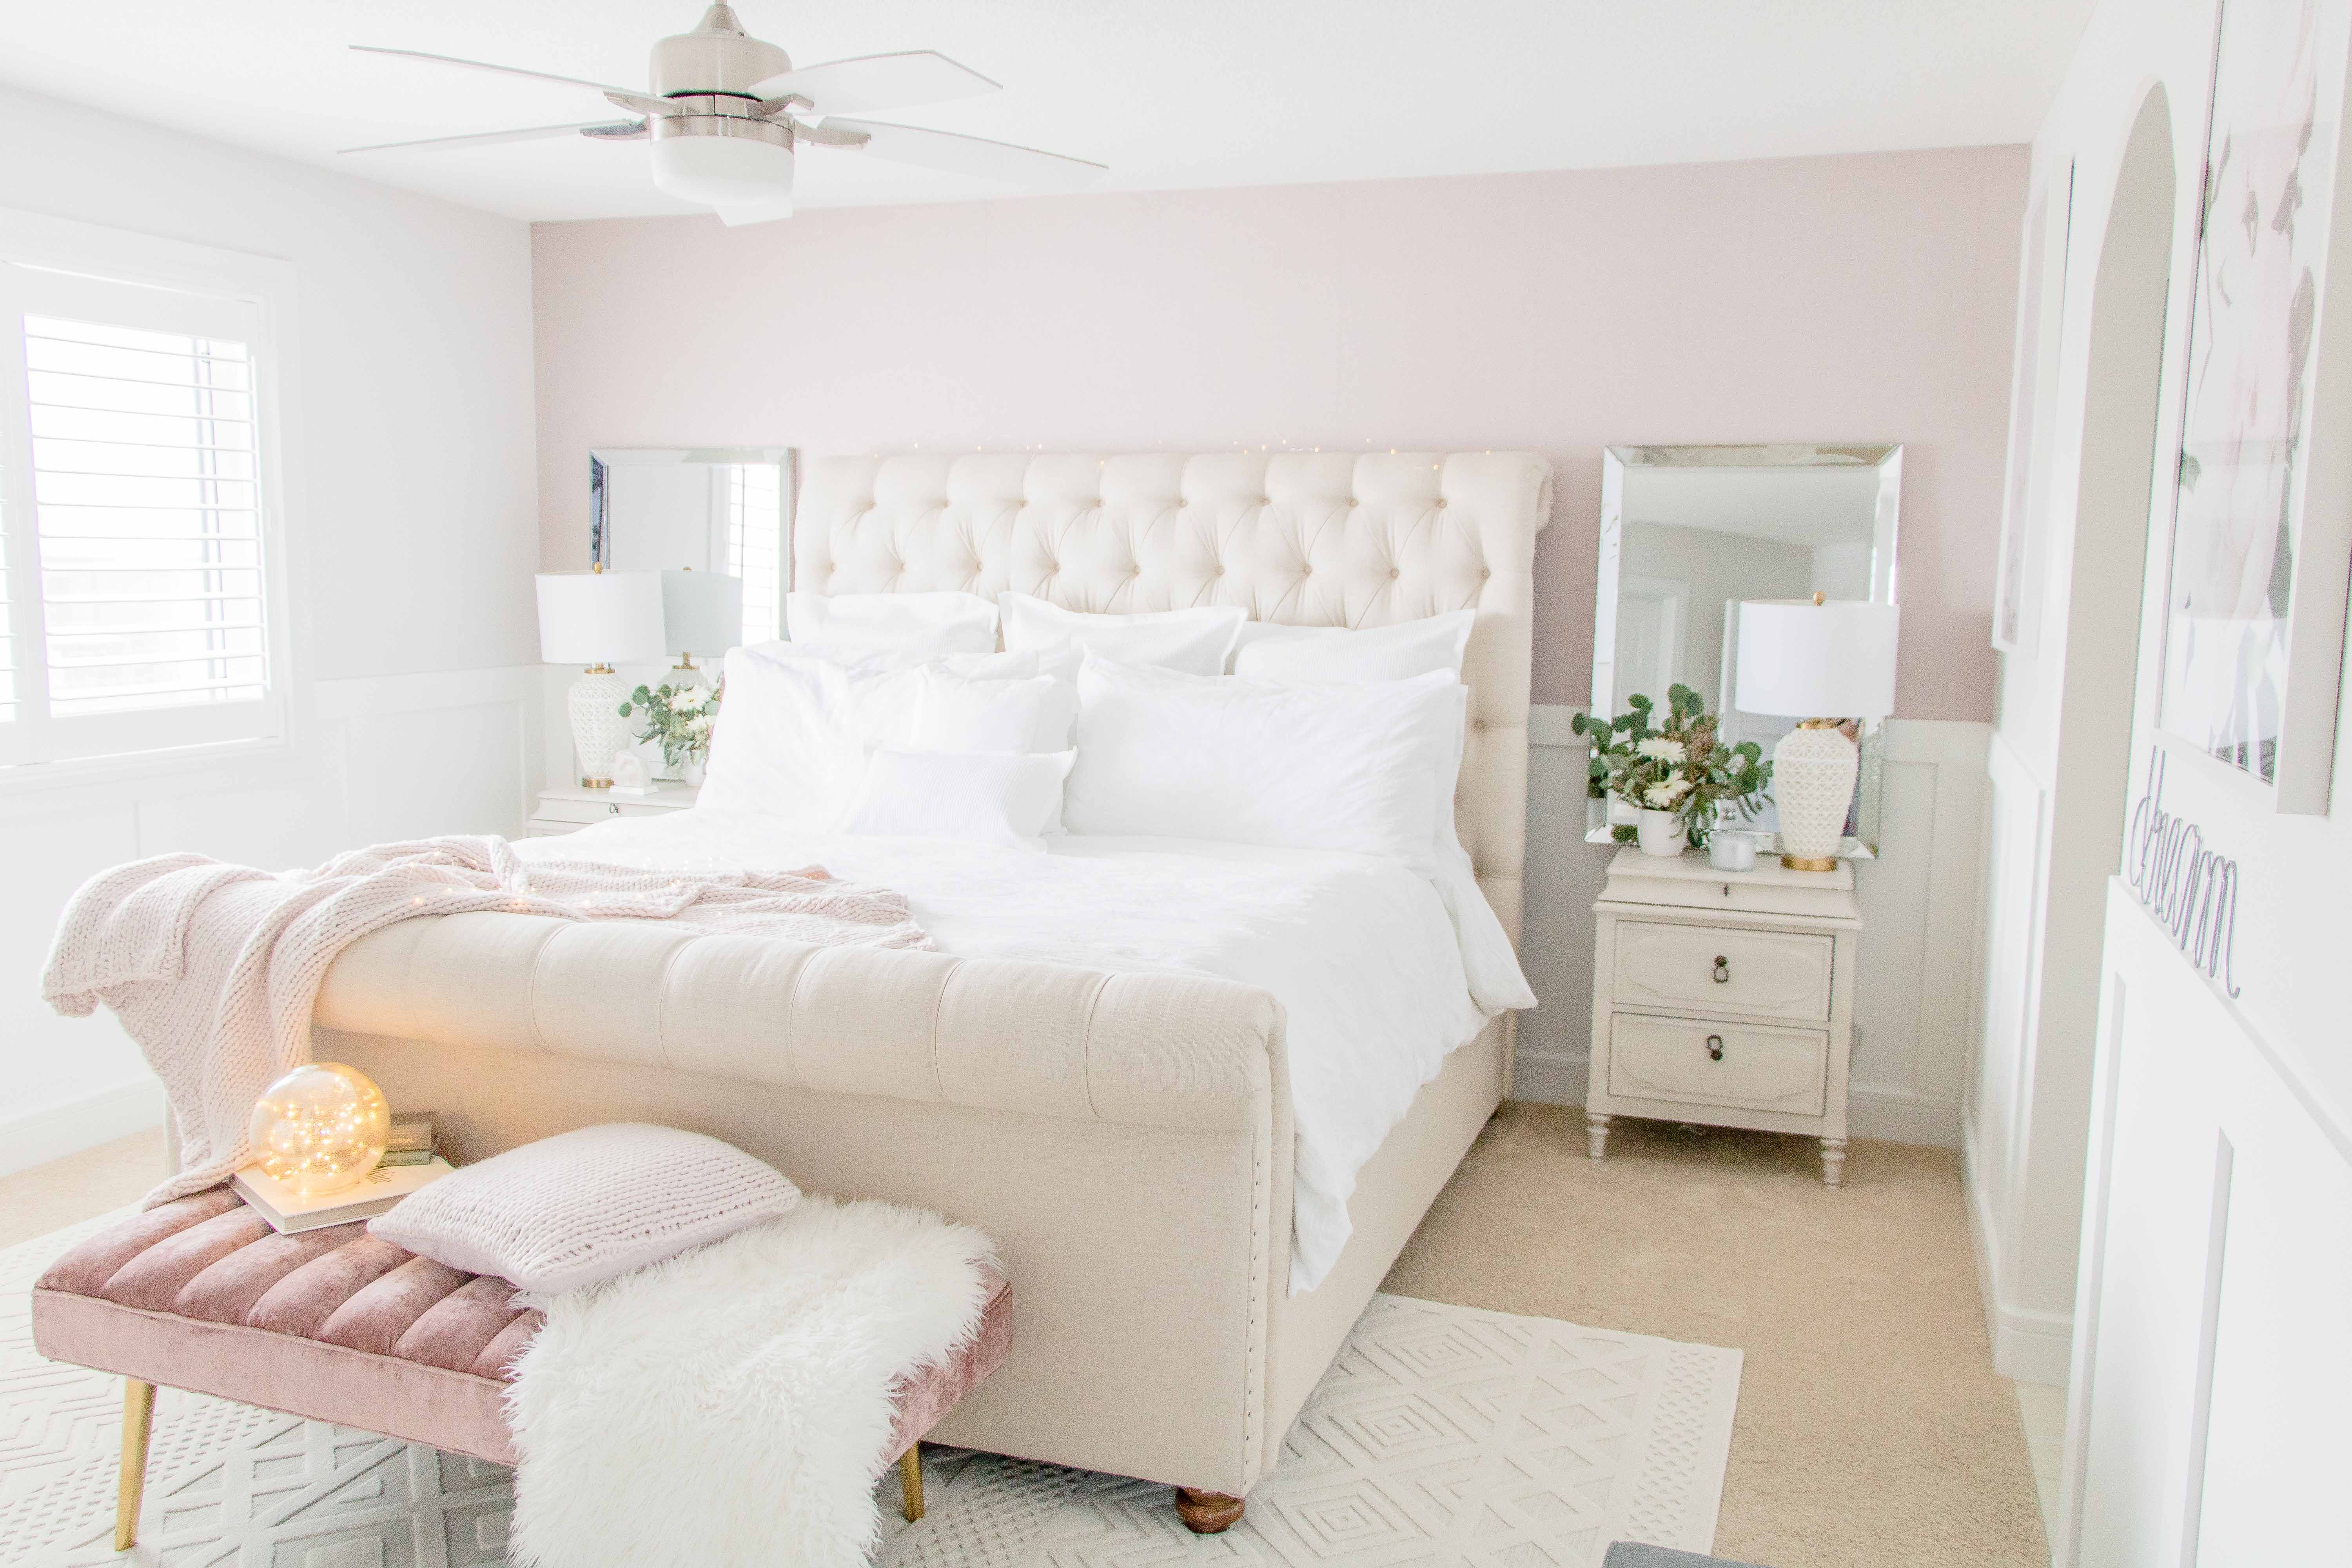 Bedroom with pink walls and white linen on the bed